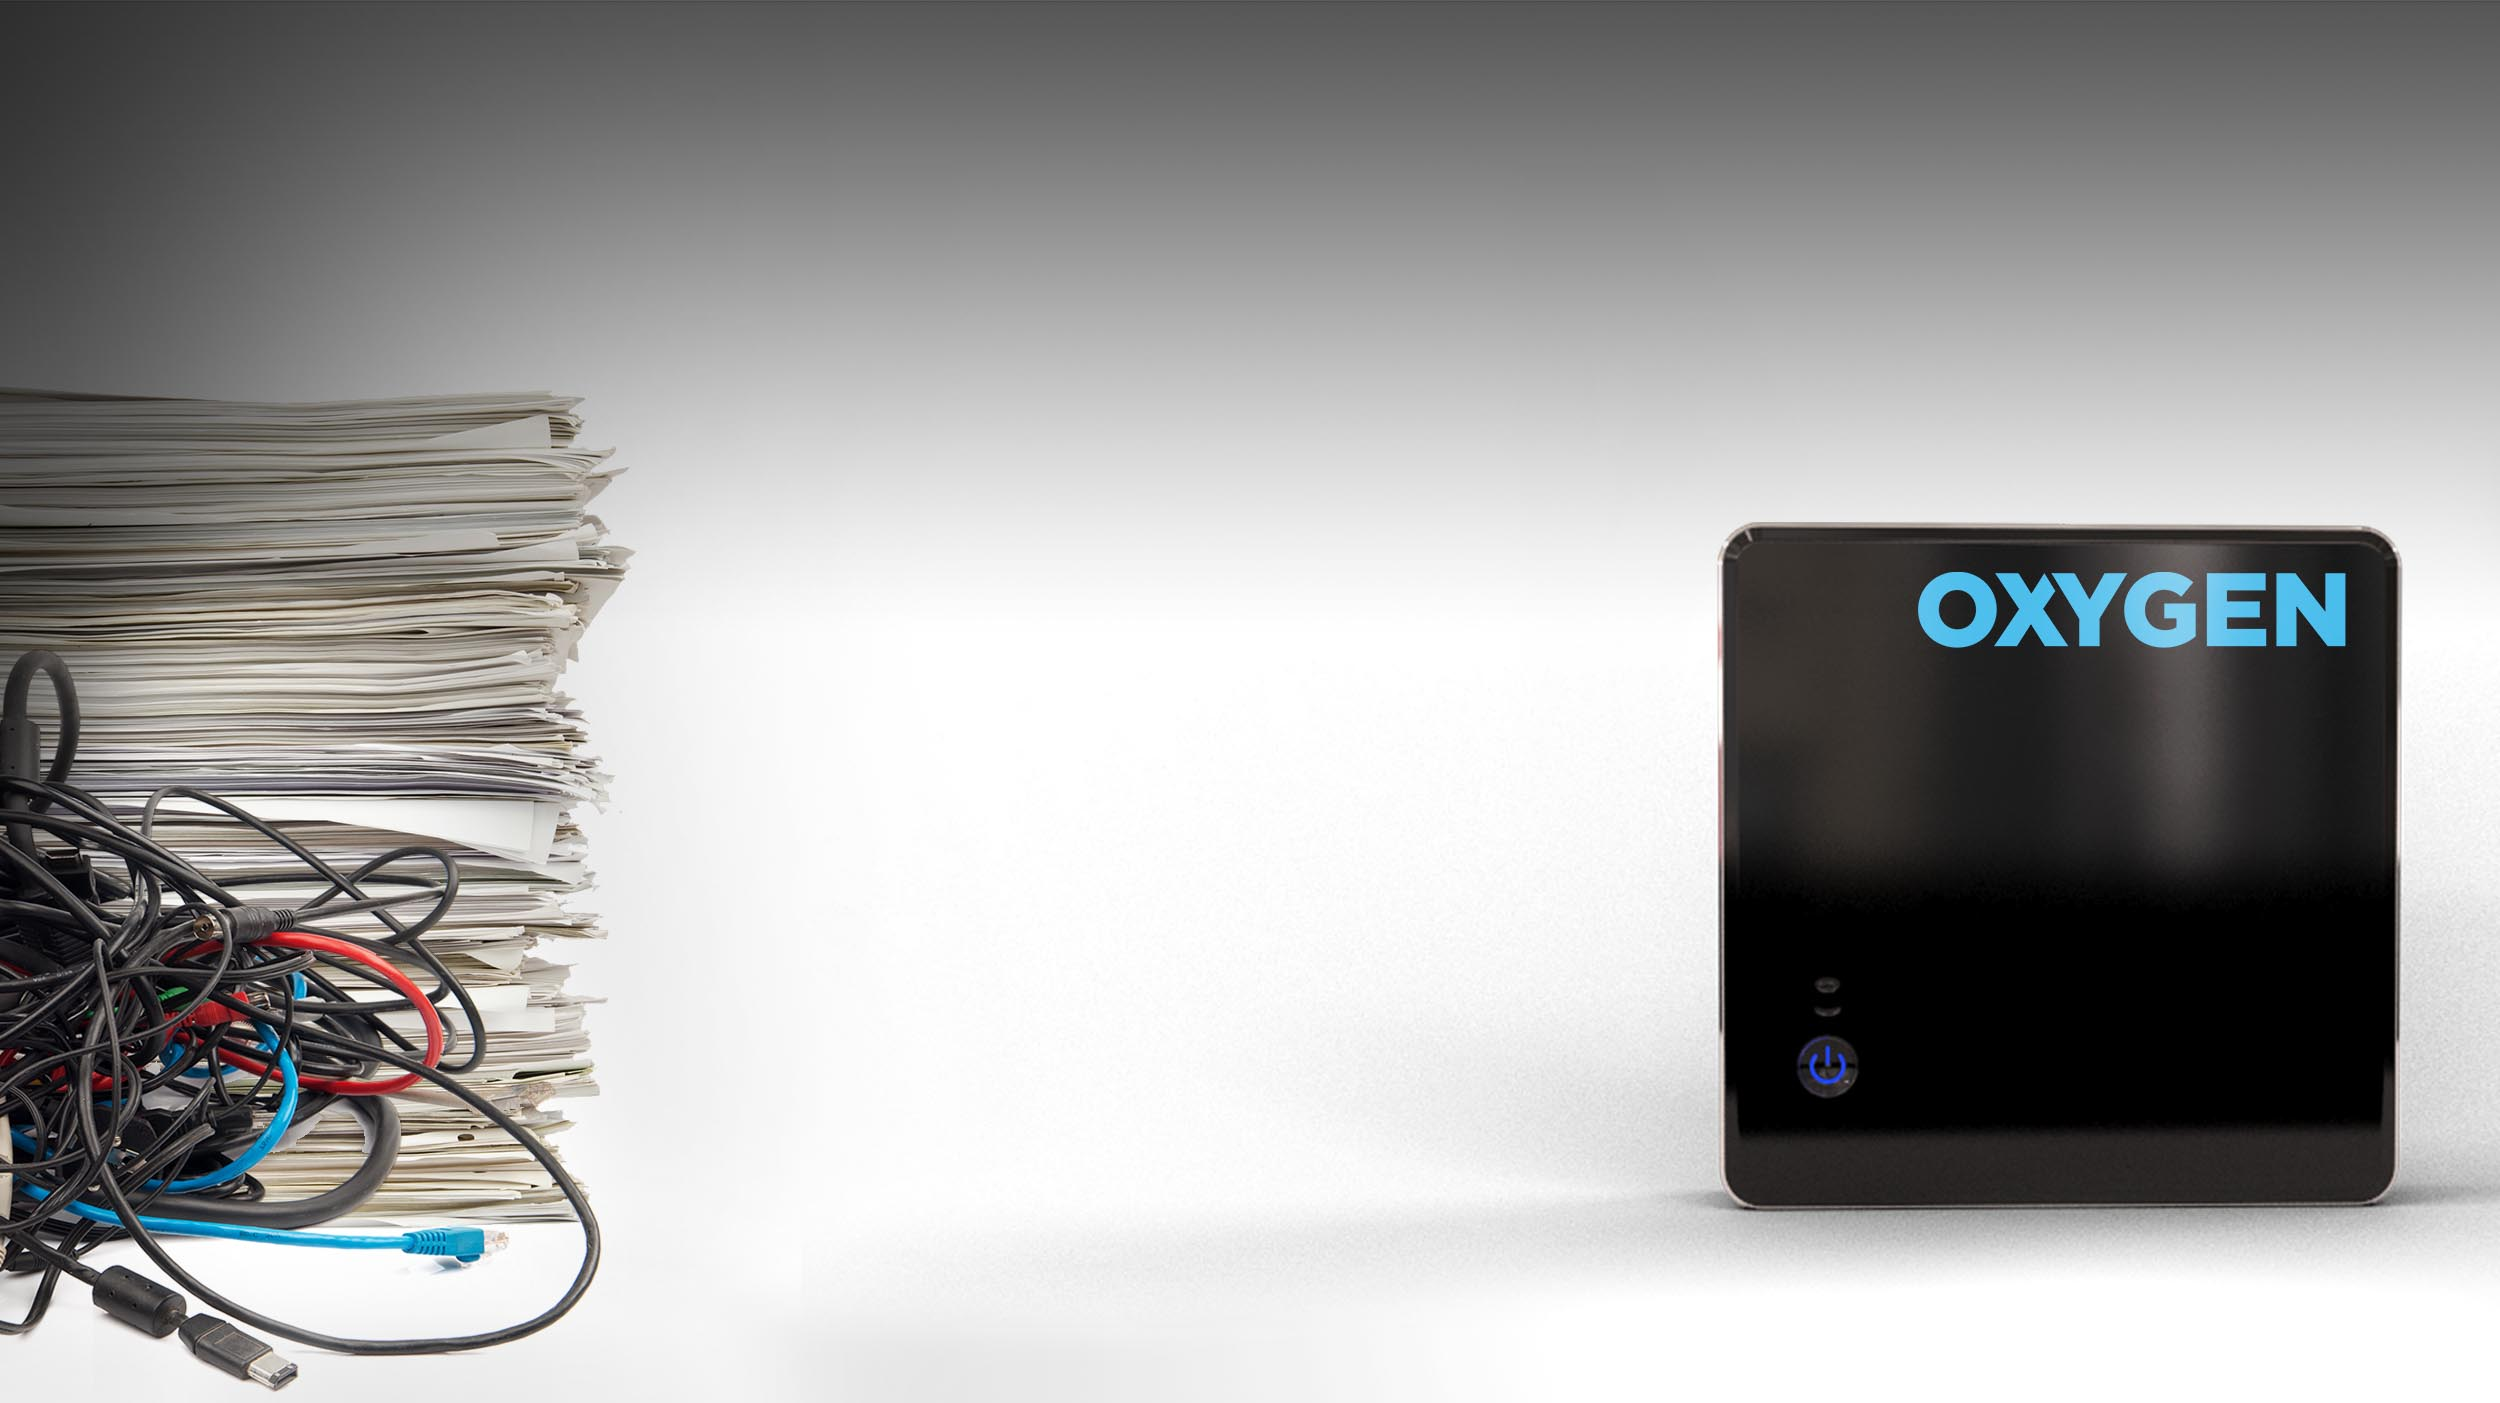 GOODBYE PAPER & WIRES   Say hello to Oxygen - the all wireless electronic data capture system.